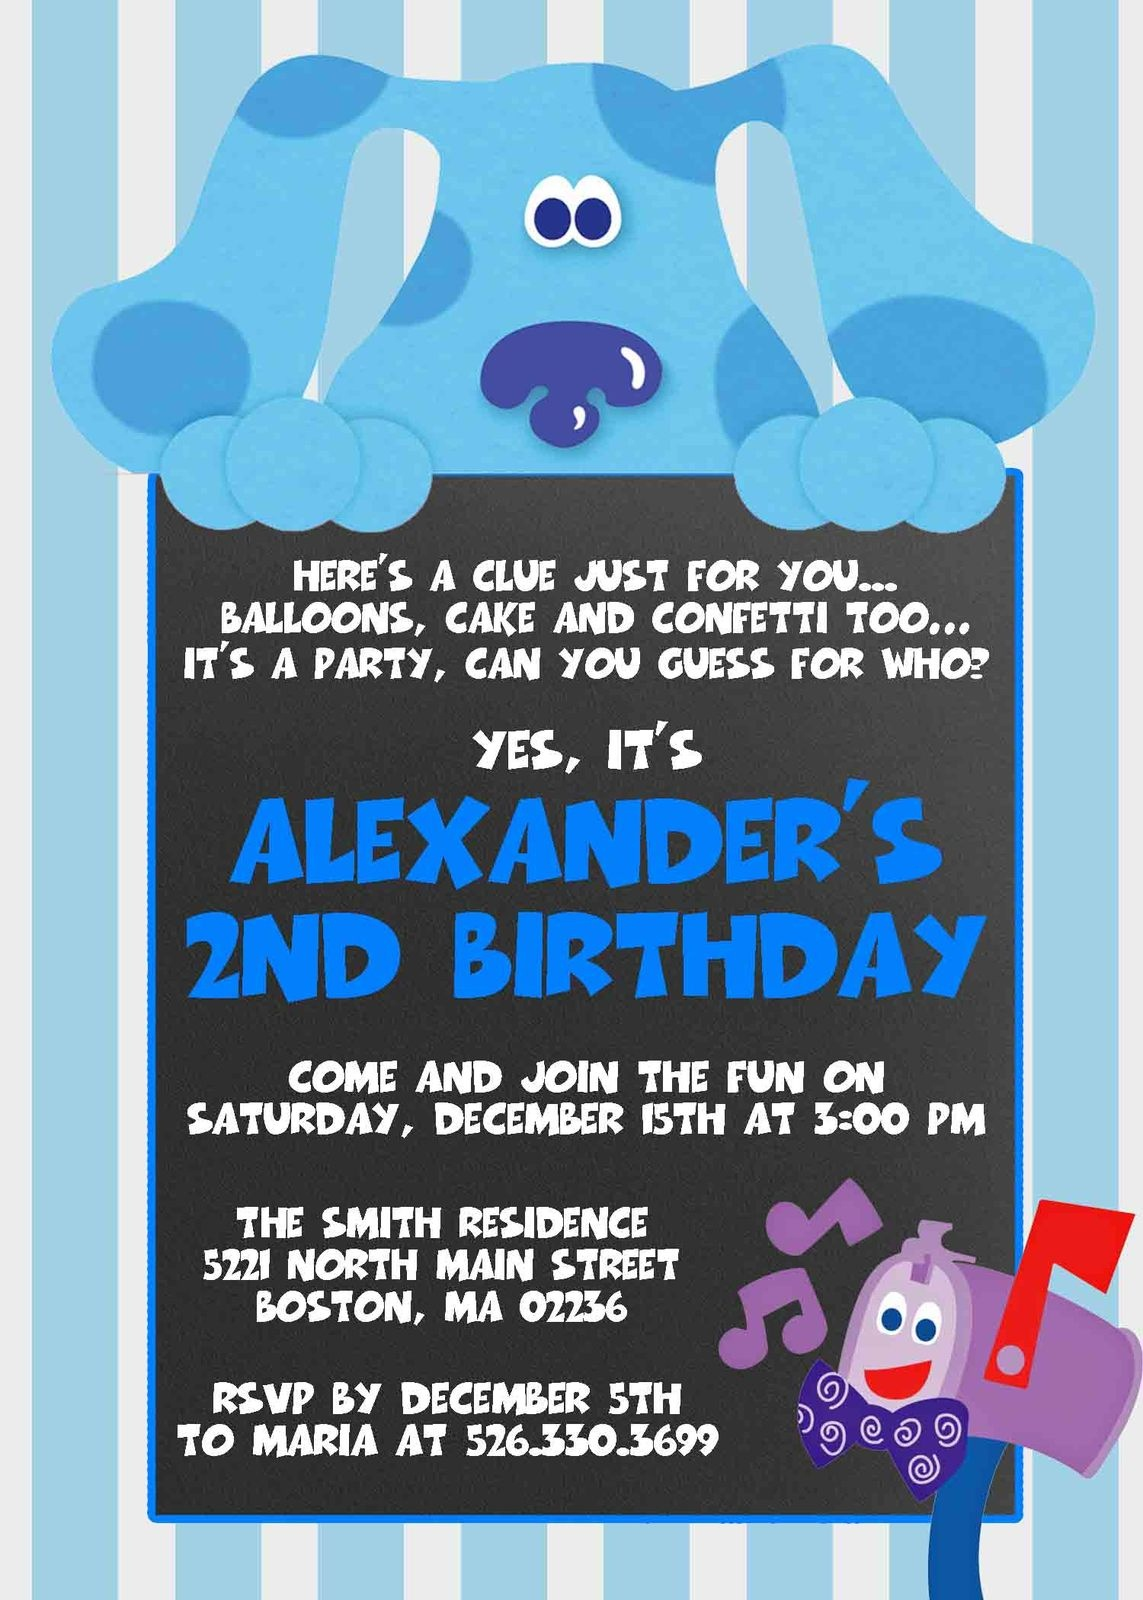 26 Unique Blues Clues Baby Shower - Baby Shower - Blue's Clues Invitations Free Printable